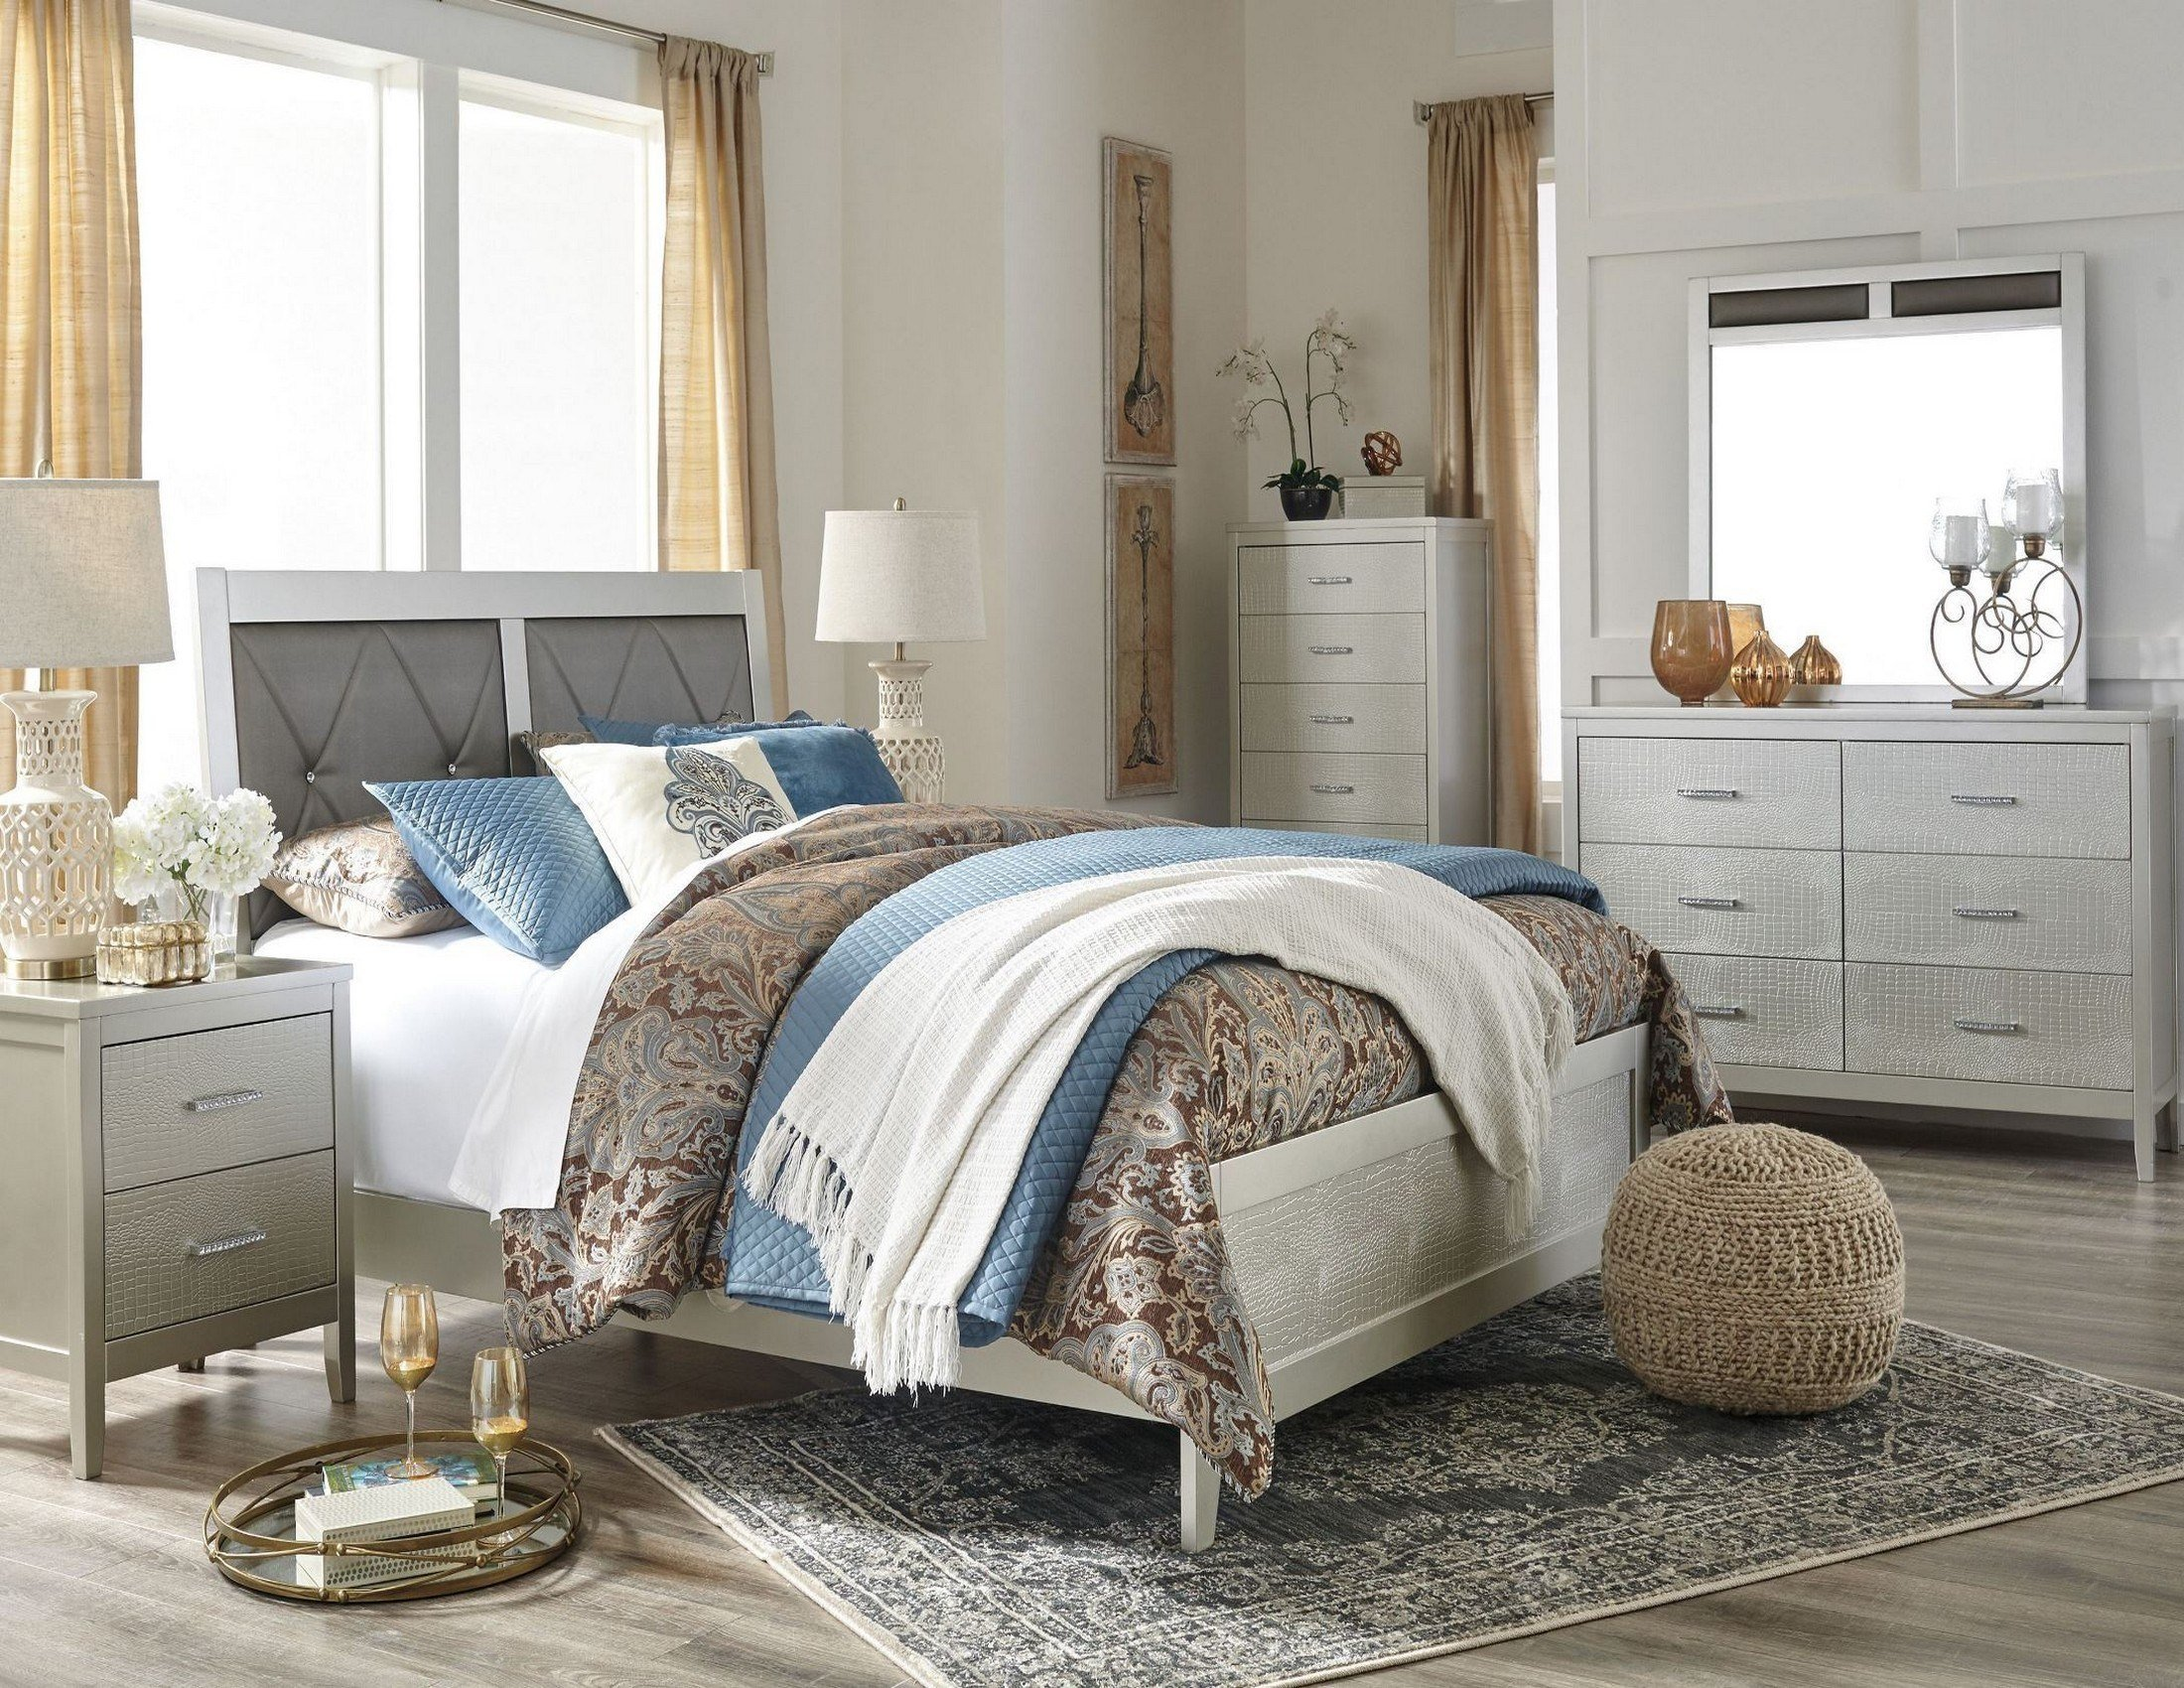 Best Olivet Silver Upholstered Panel Bedroom Set From Ashley Coleman Furniture With Pictures